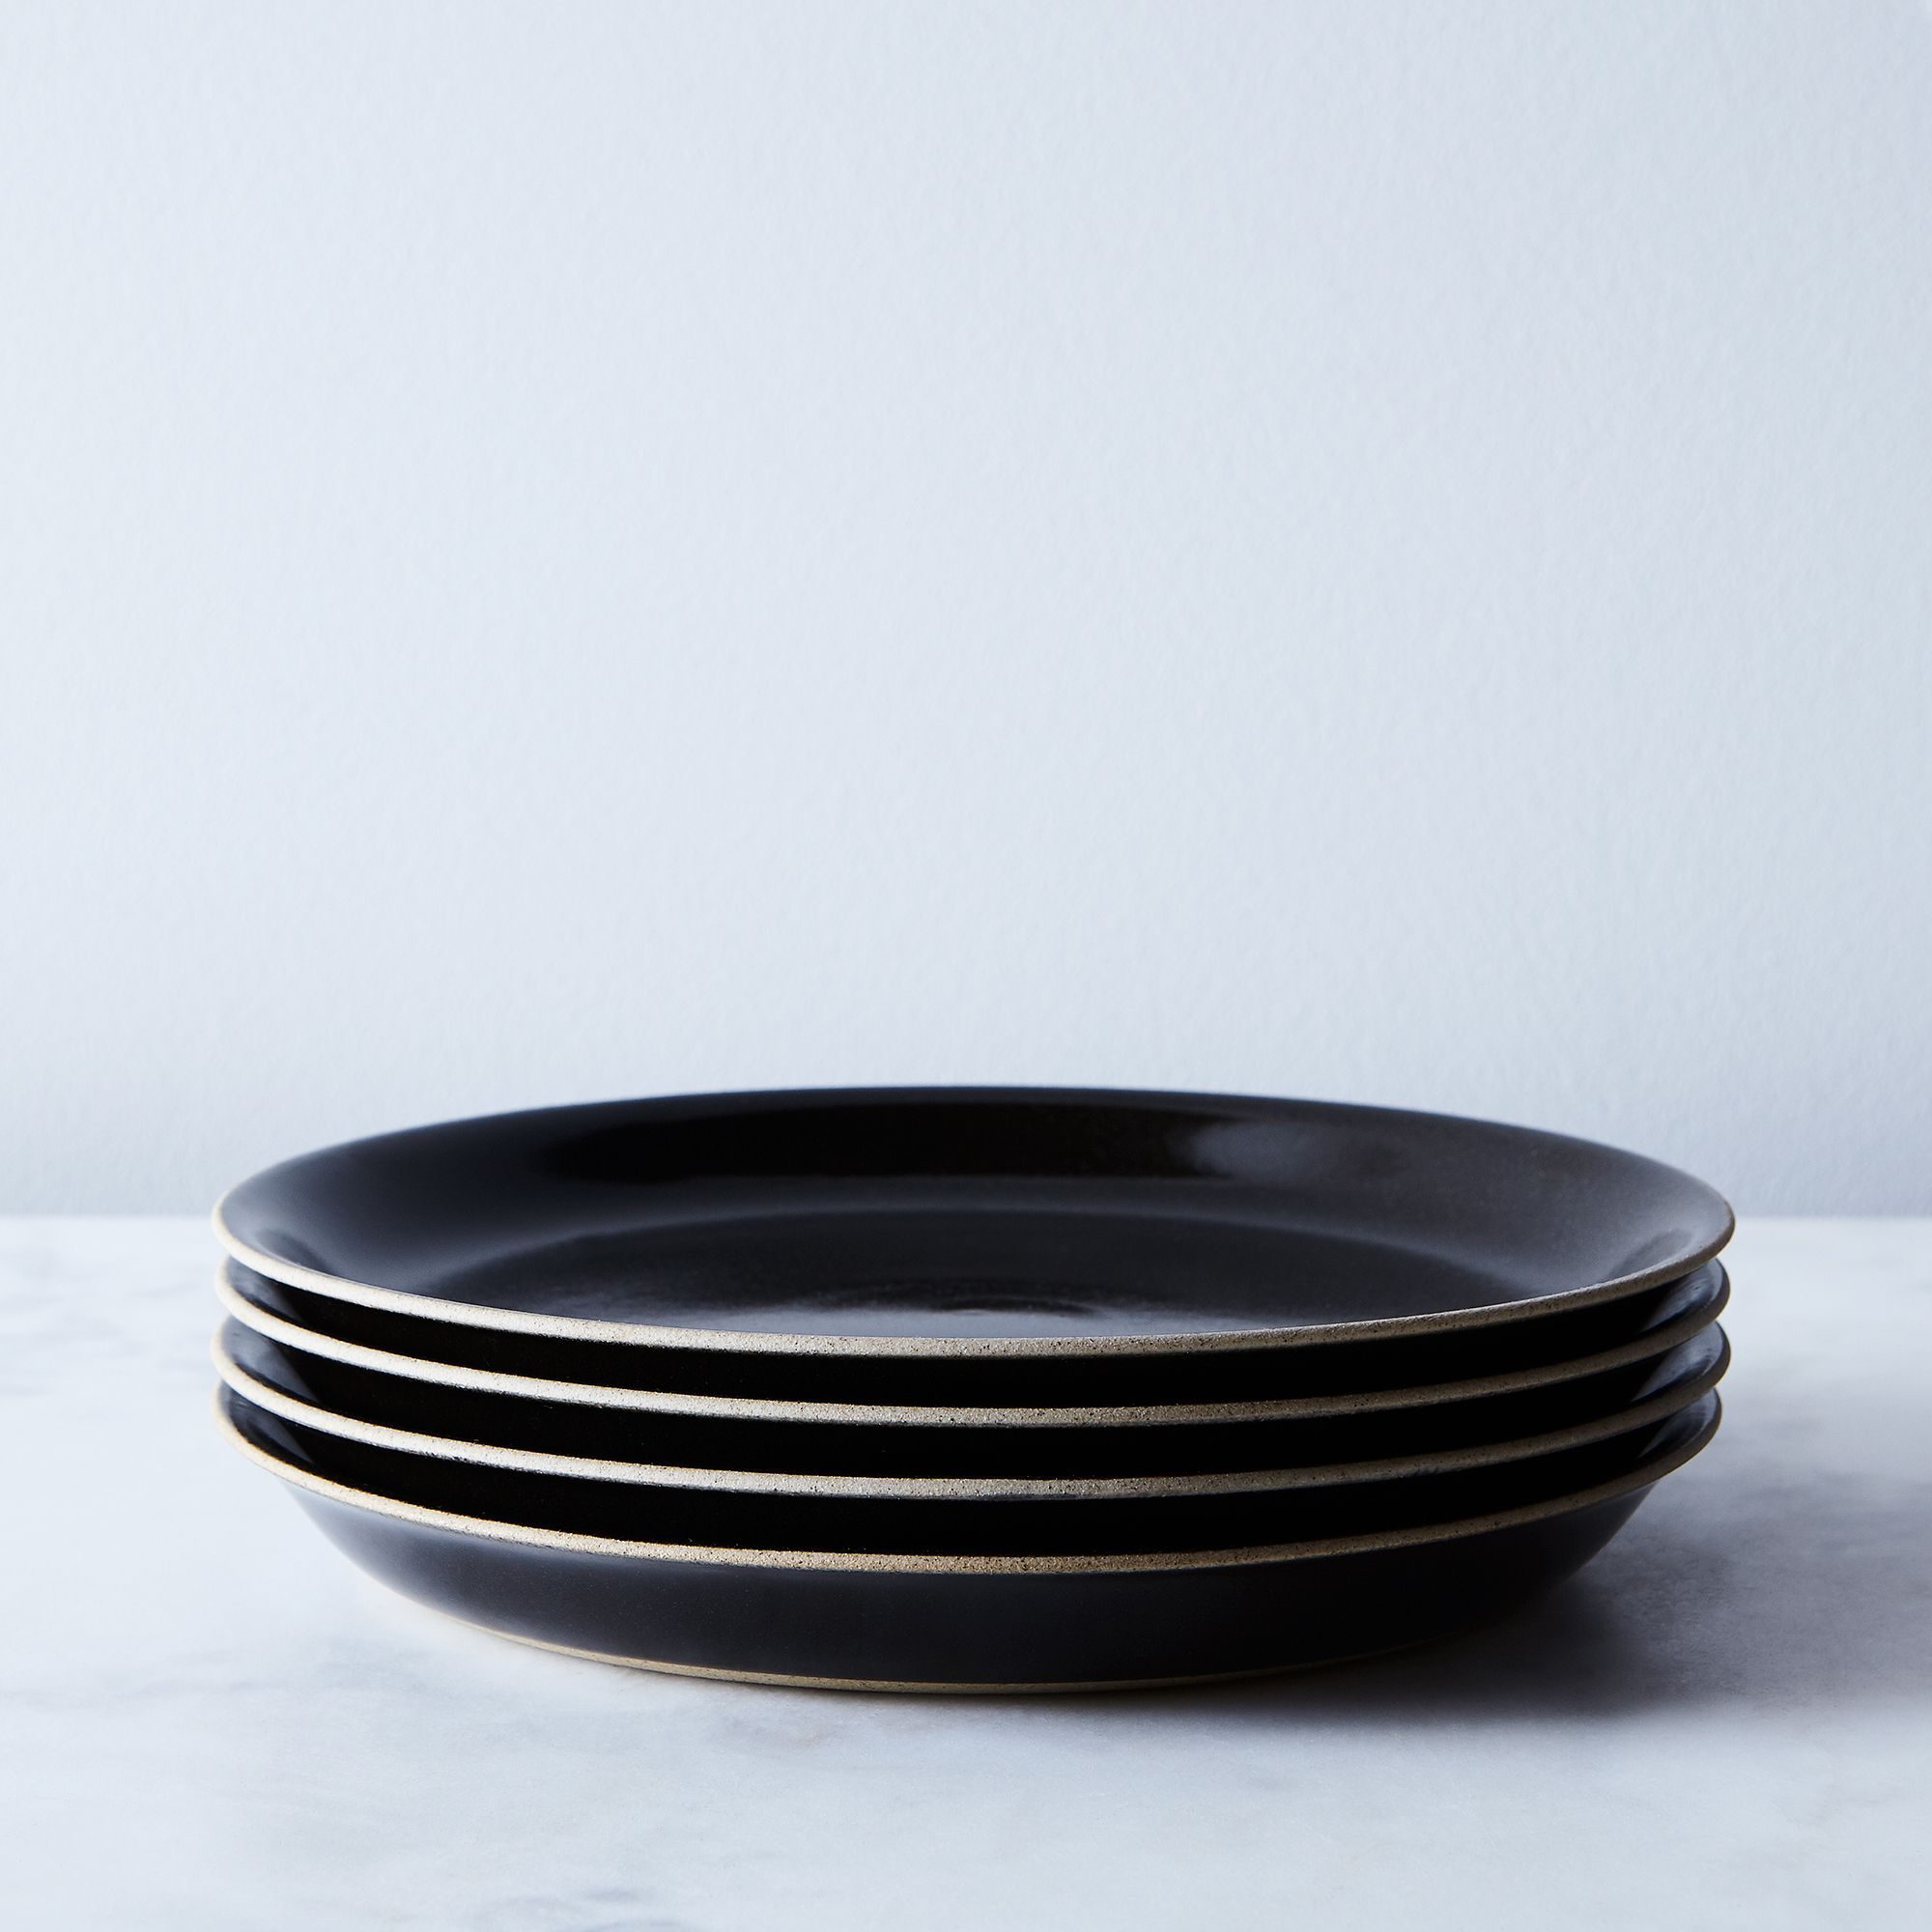 9abc709b e336 4545 a6f0 060855e05395  2017 0907 kinto black ceramic dinnerware set of 4 plates silo rocky luten 002